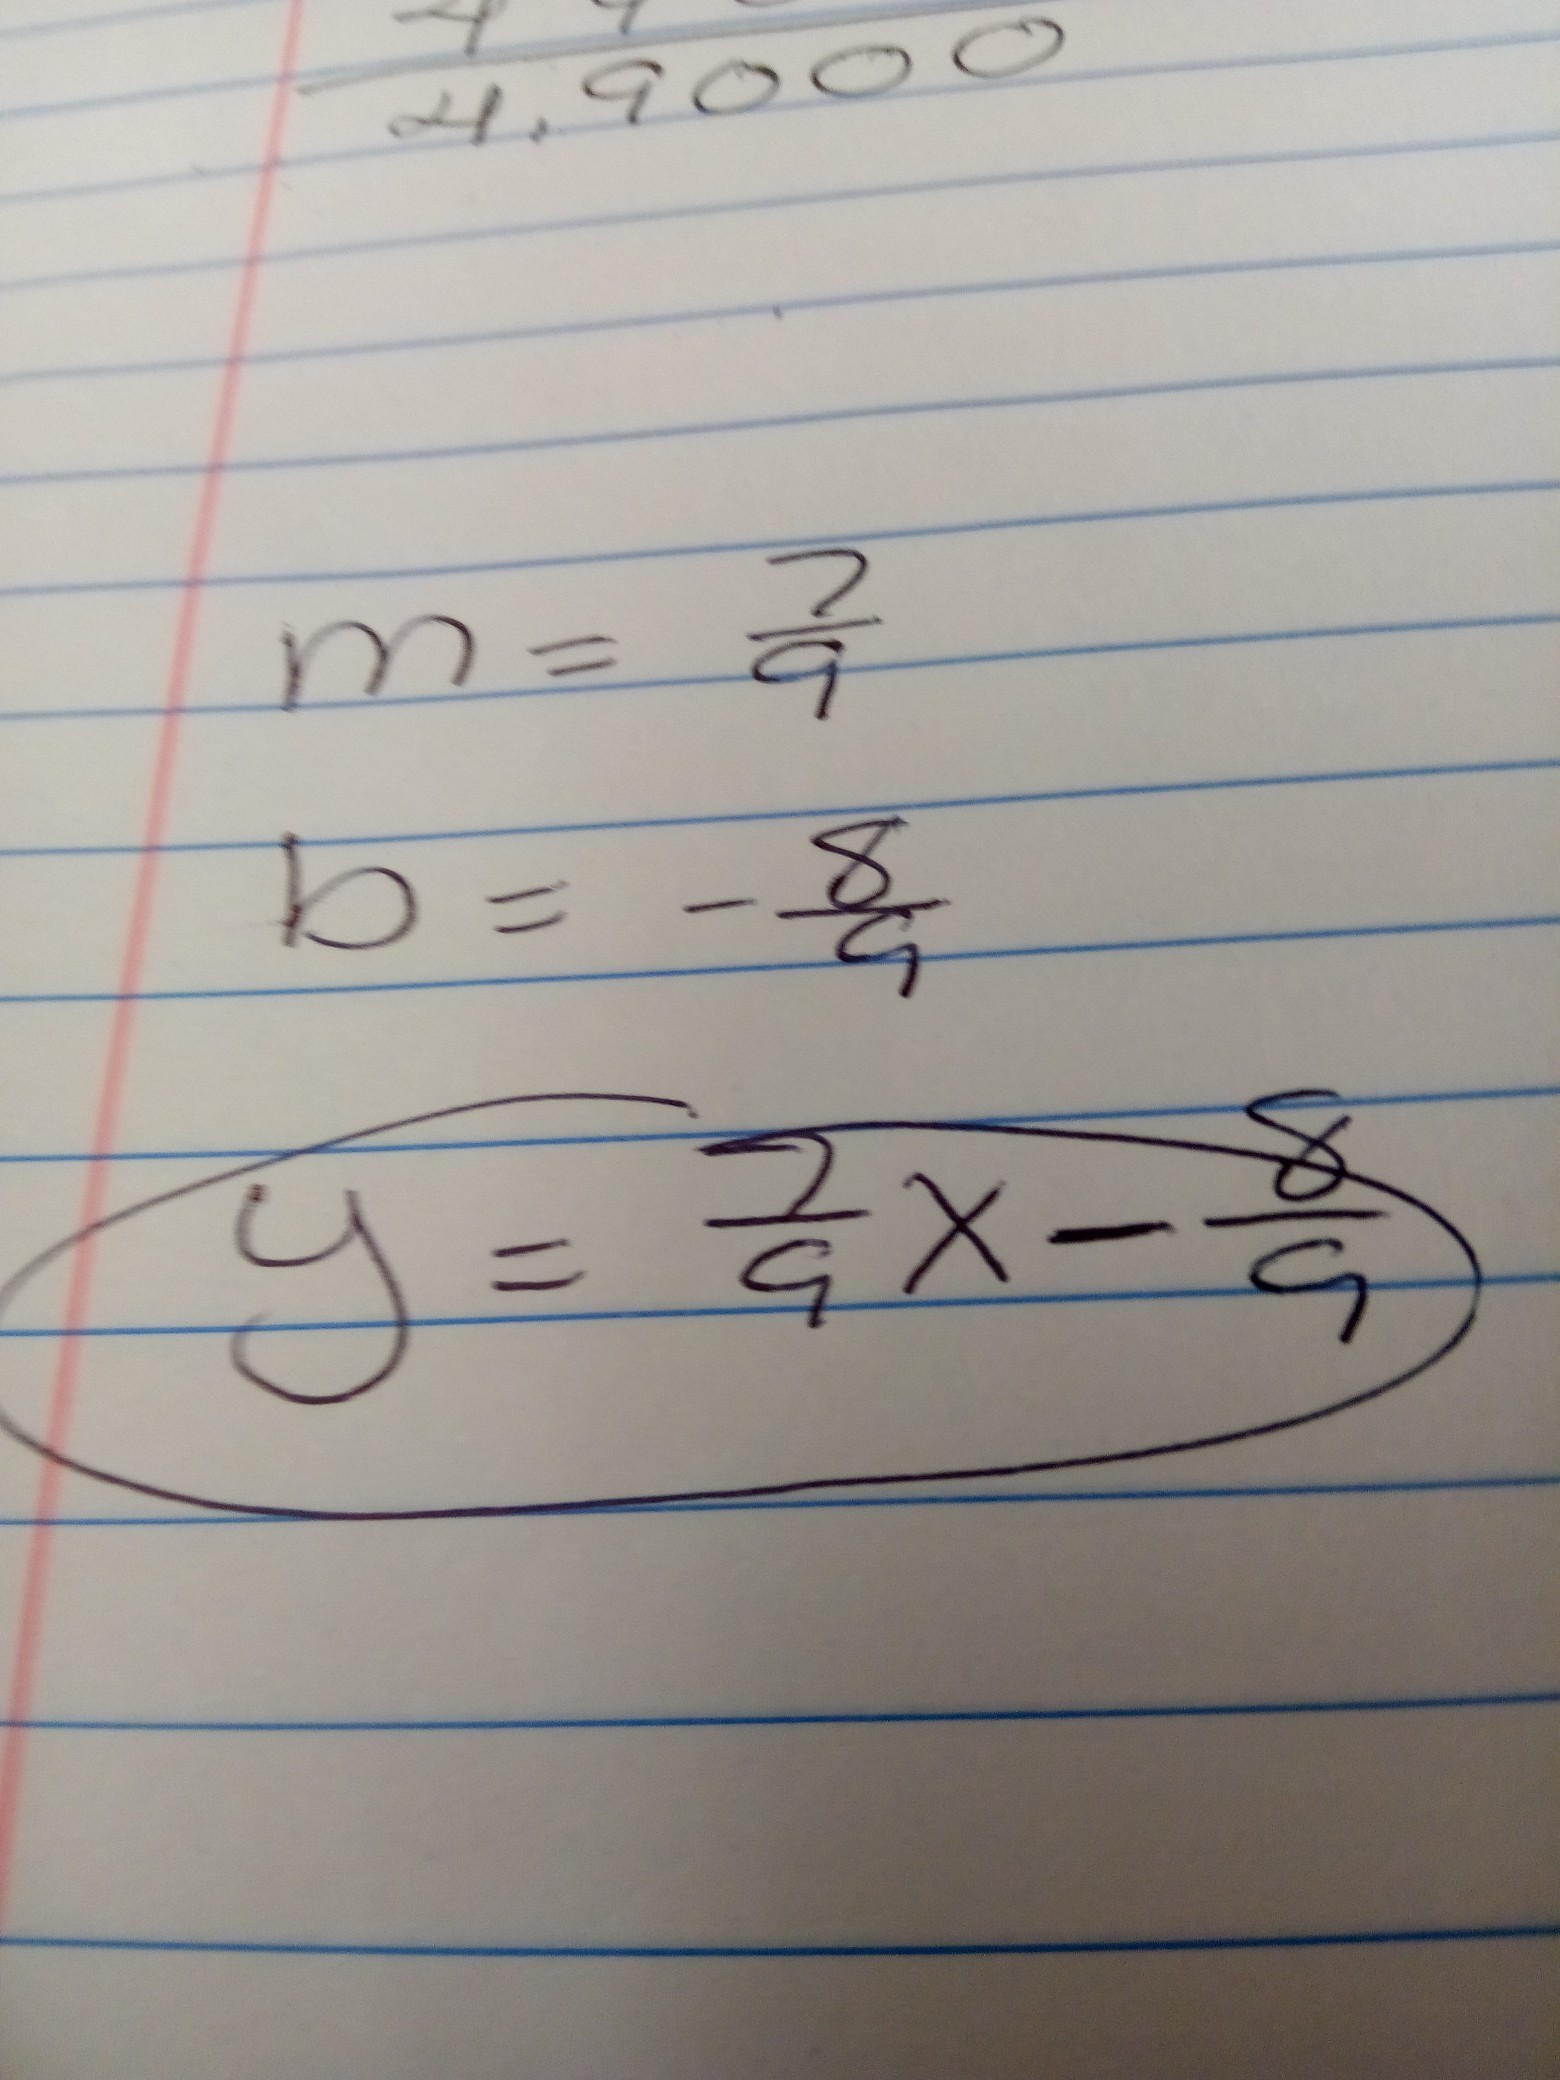 Given The Slope And Ordered Pair Write In Y Mx B Form